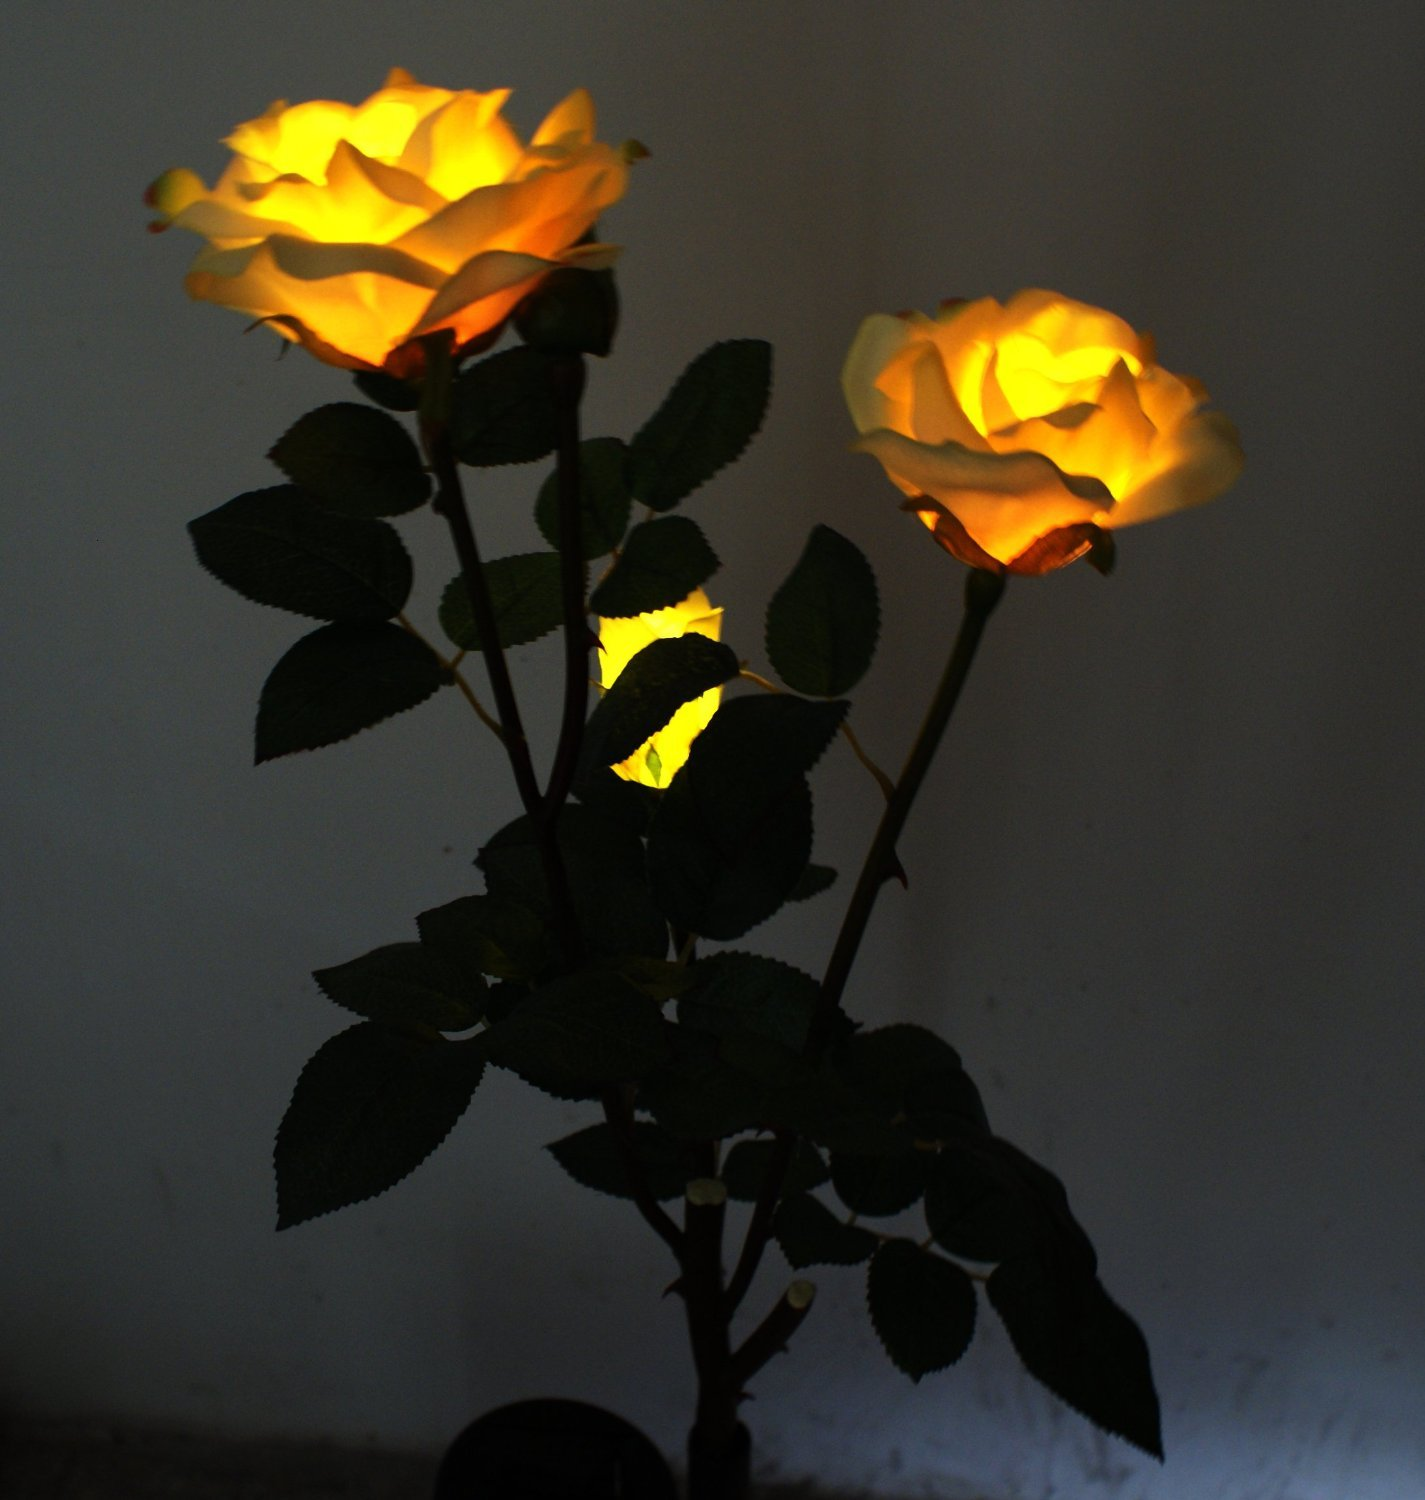 Solar-Yellow-Rose-Flower-Lights-Lamp-Solar-Powered-Garden-Outdoor-Decorative-Landscape-LED-Rose-Lights-Year-round-Great-Gift